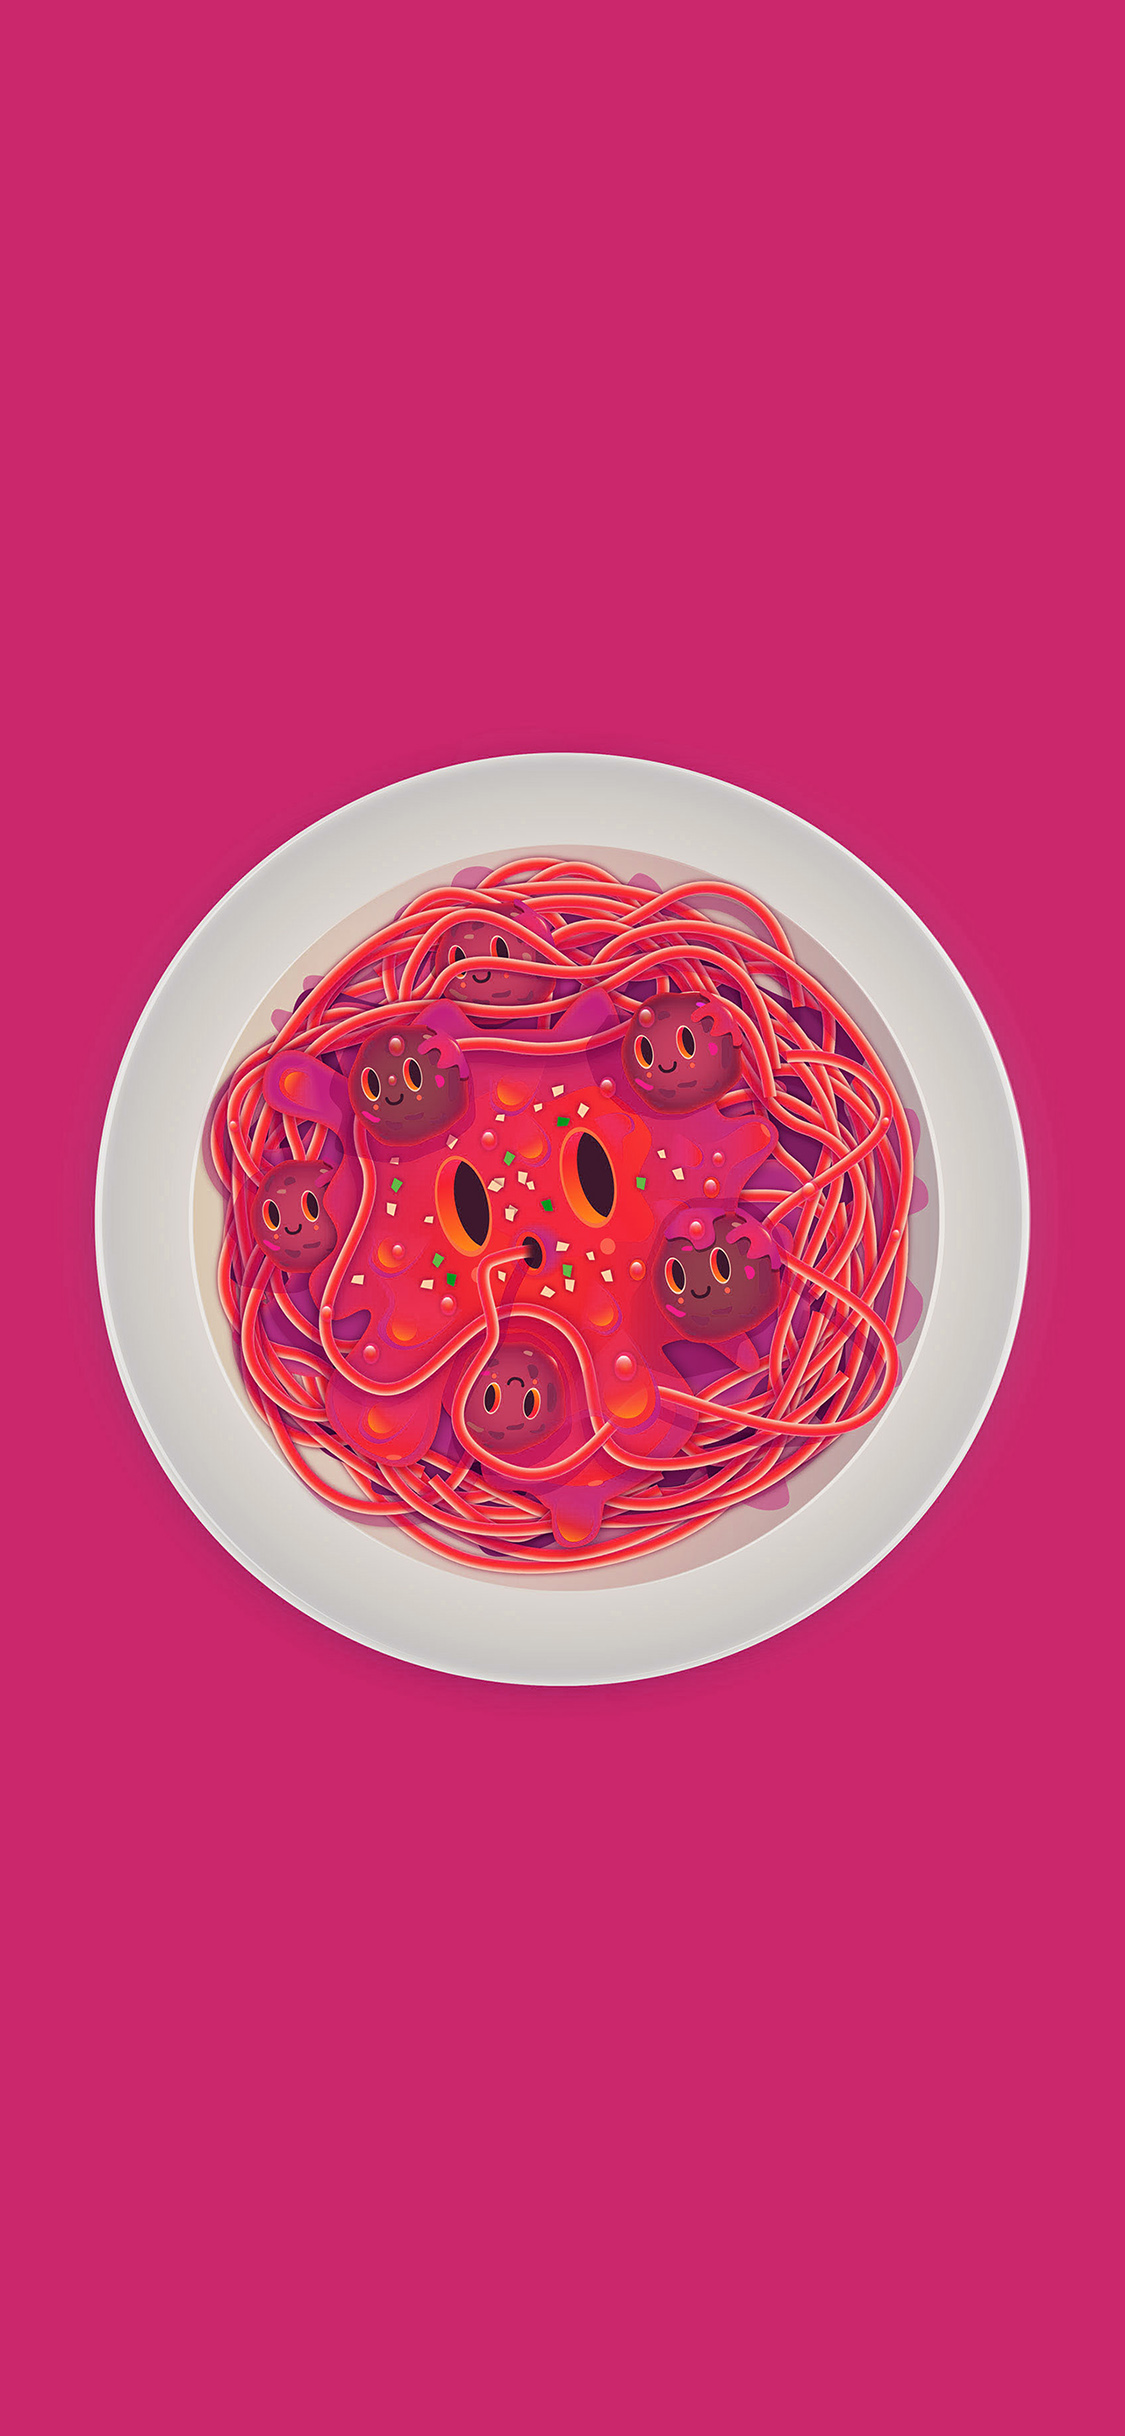 iPhonexpapers.com-Apple-iPhone-wallpaper-ay23-pasta-pink-chracter-cute-illustration-art